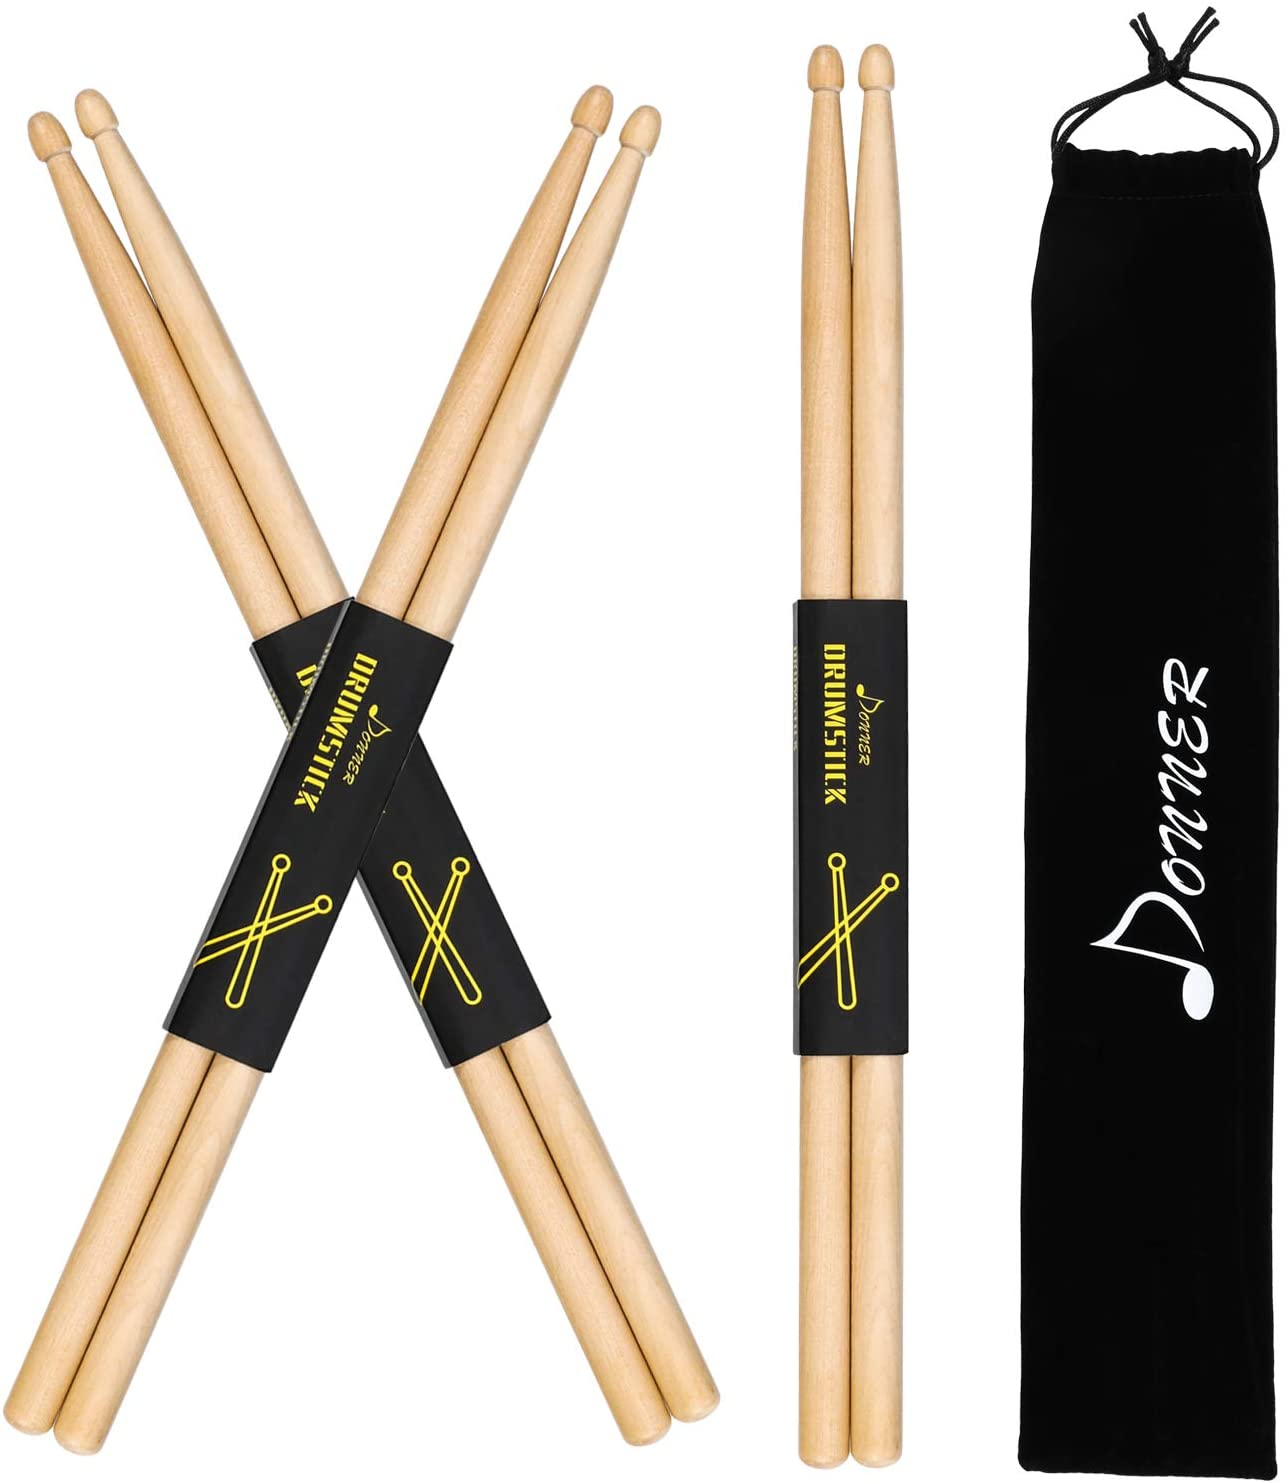 Donner Snare Drum Sticks 5A Classic Maple Wood Drumsticks 3 Pair With Carrying Bag